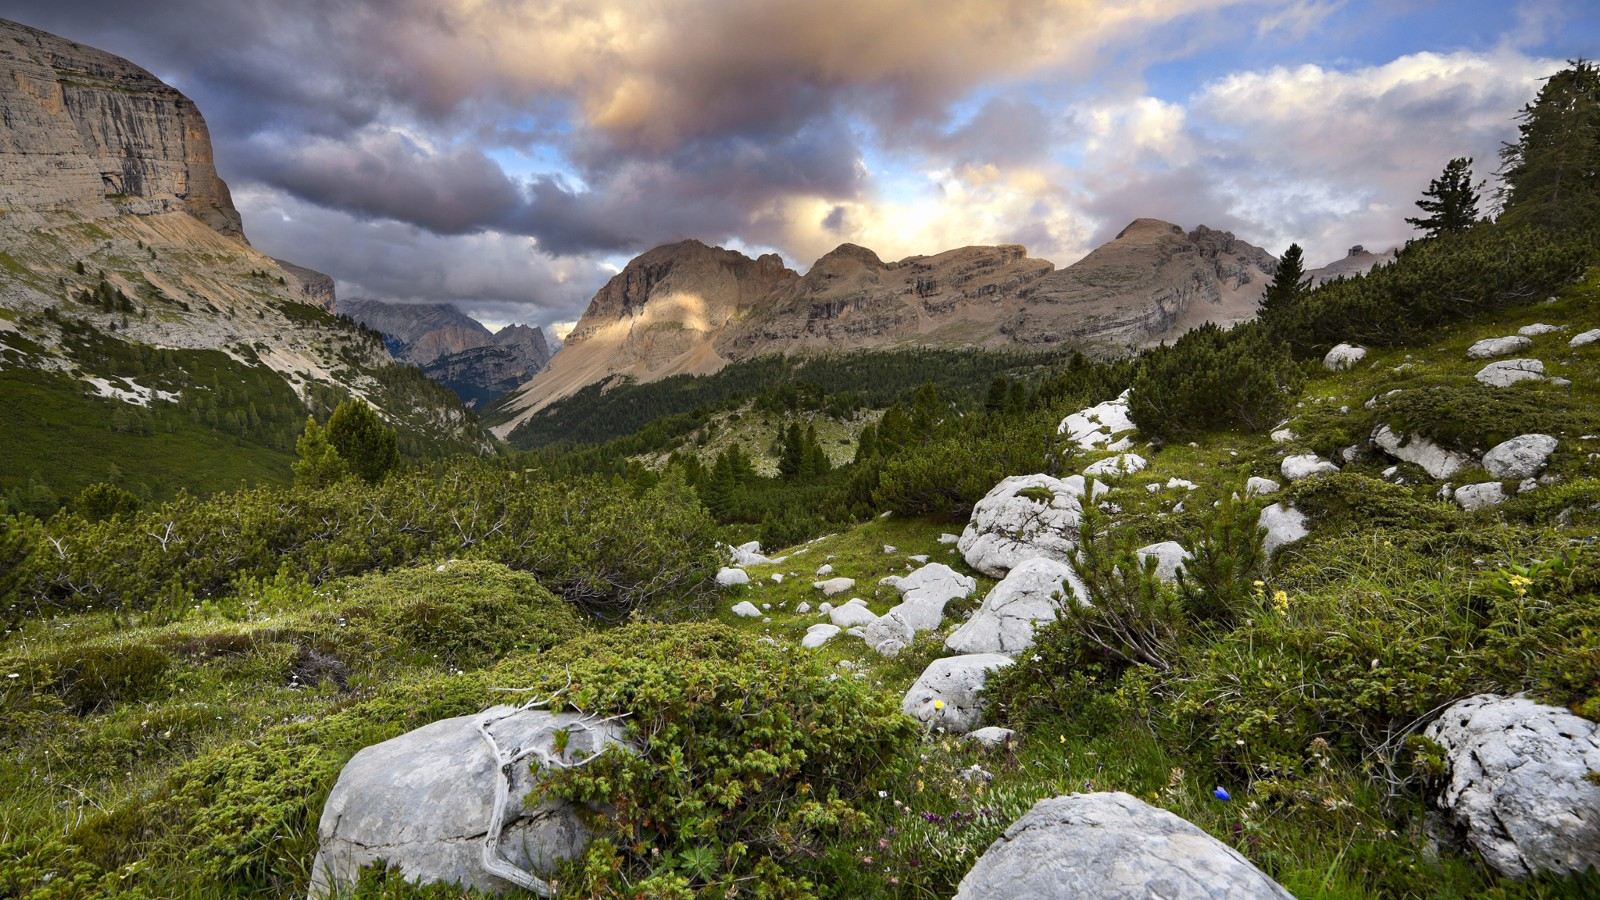 Fanes-Sennes-Prags Nature Park in the Dolomites, South Tyrol, Italy